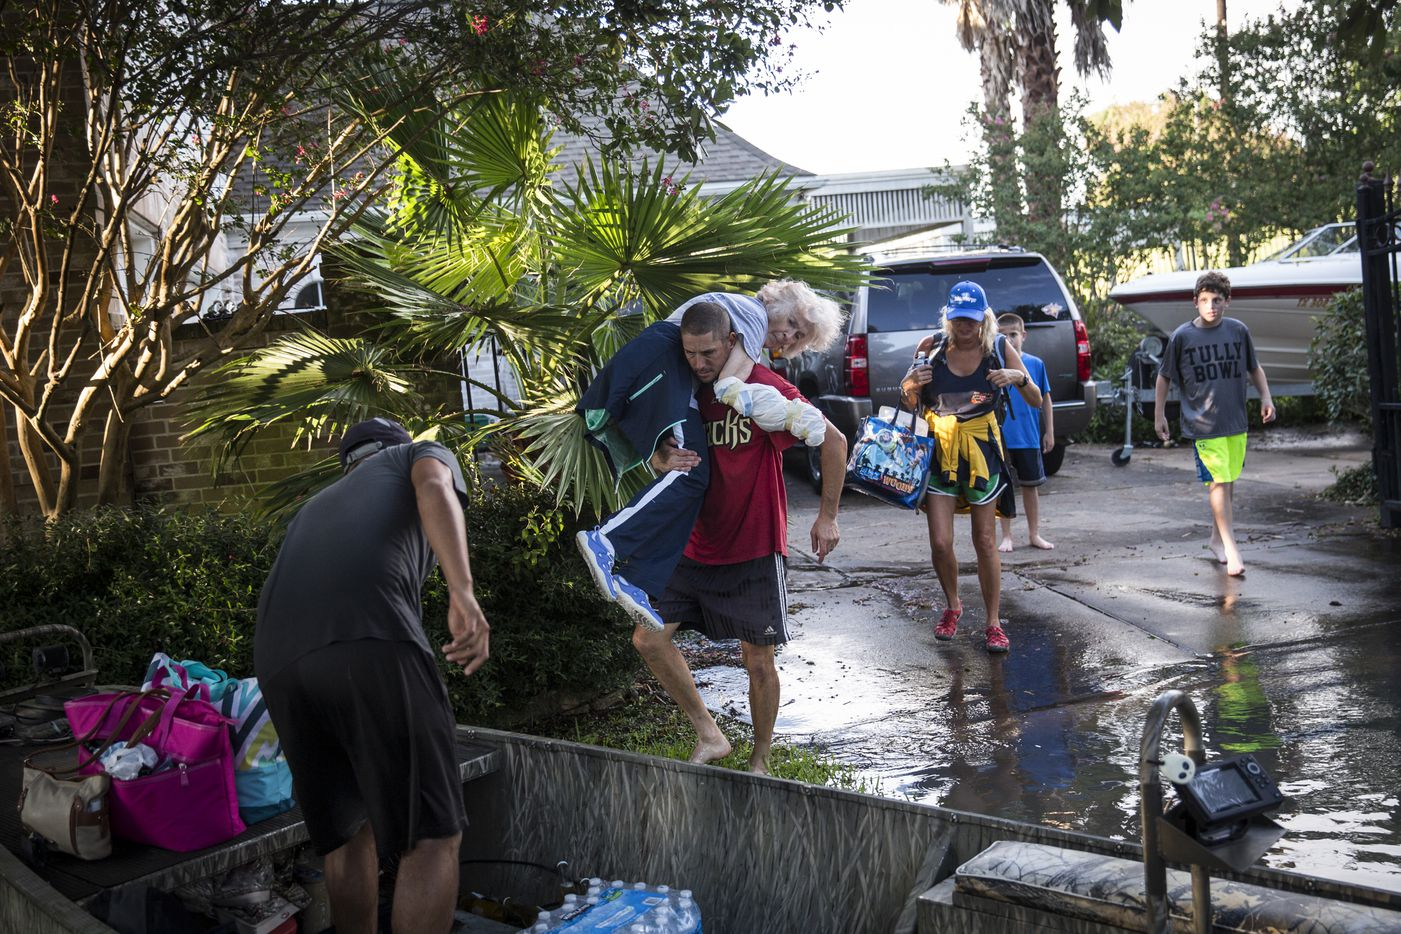 Louis Goode is carried to a boat by her son-in-law, John Zarnowiecki, during a search and rescue operation in Houston, Aug. 29, 2017.